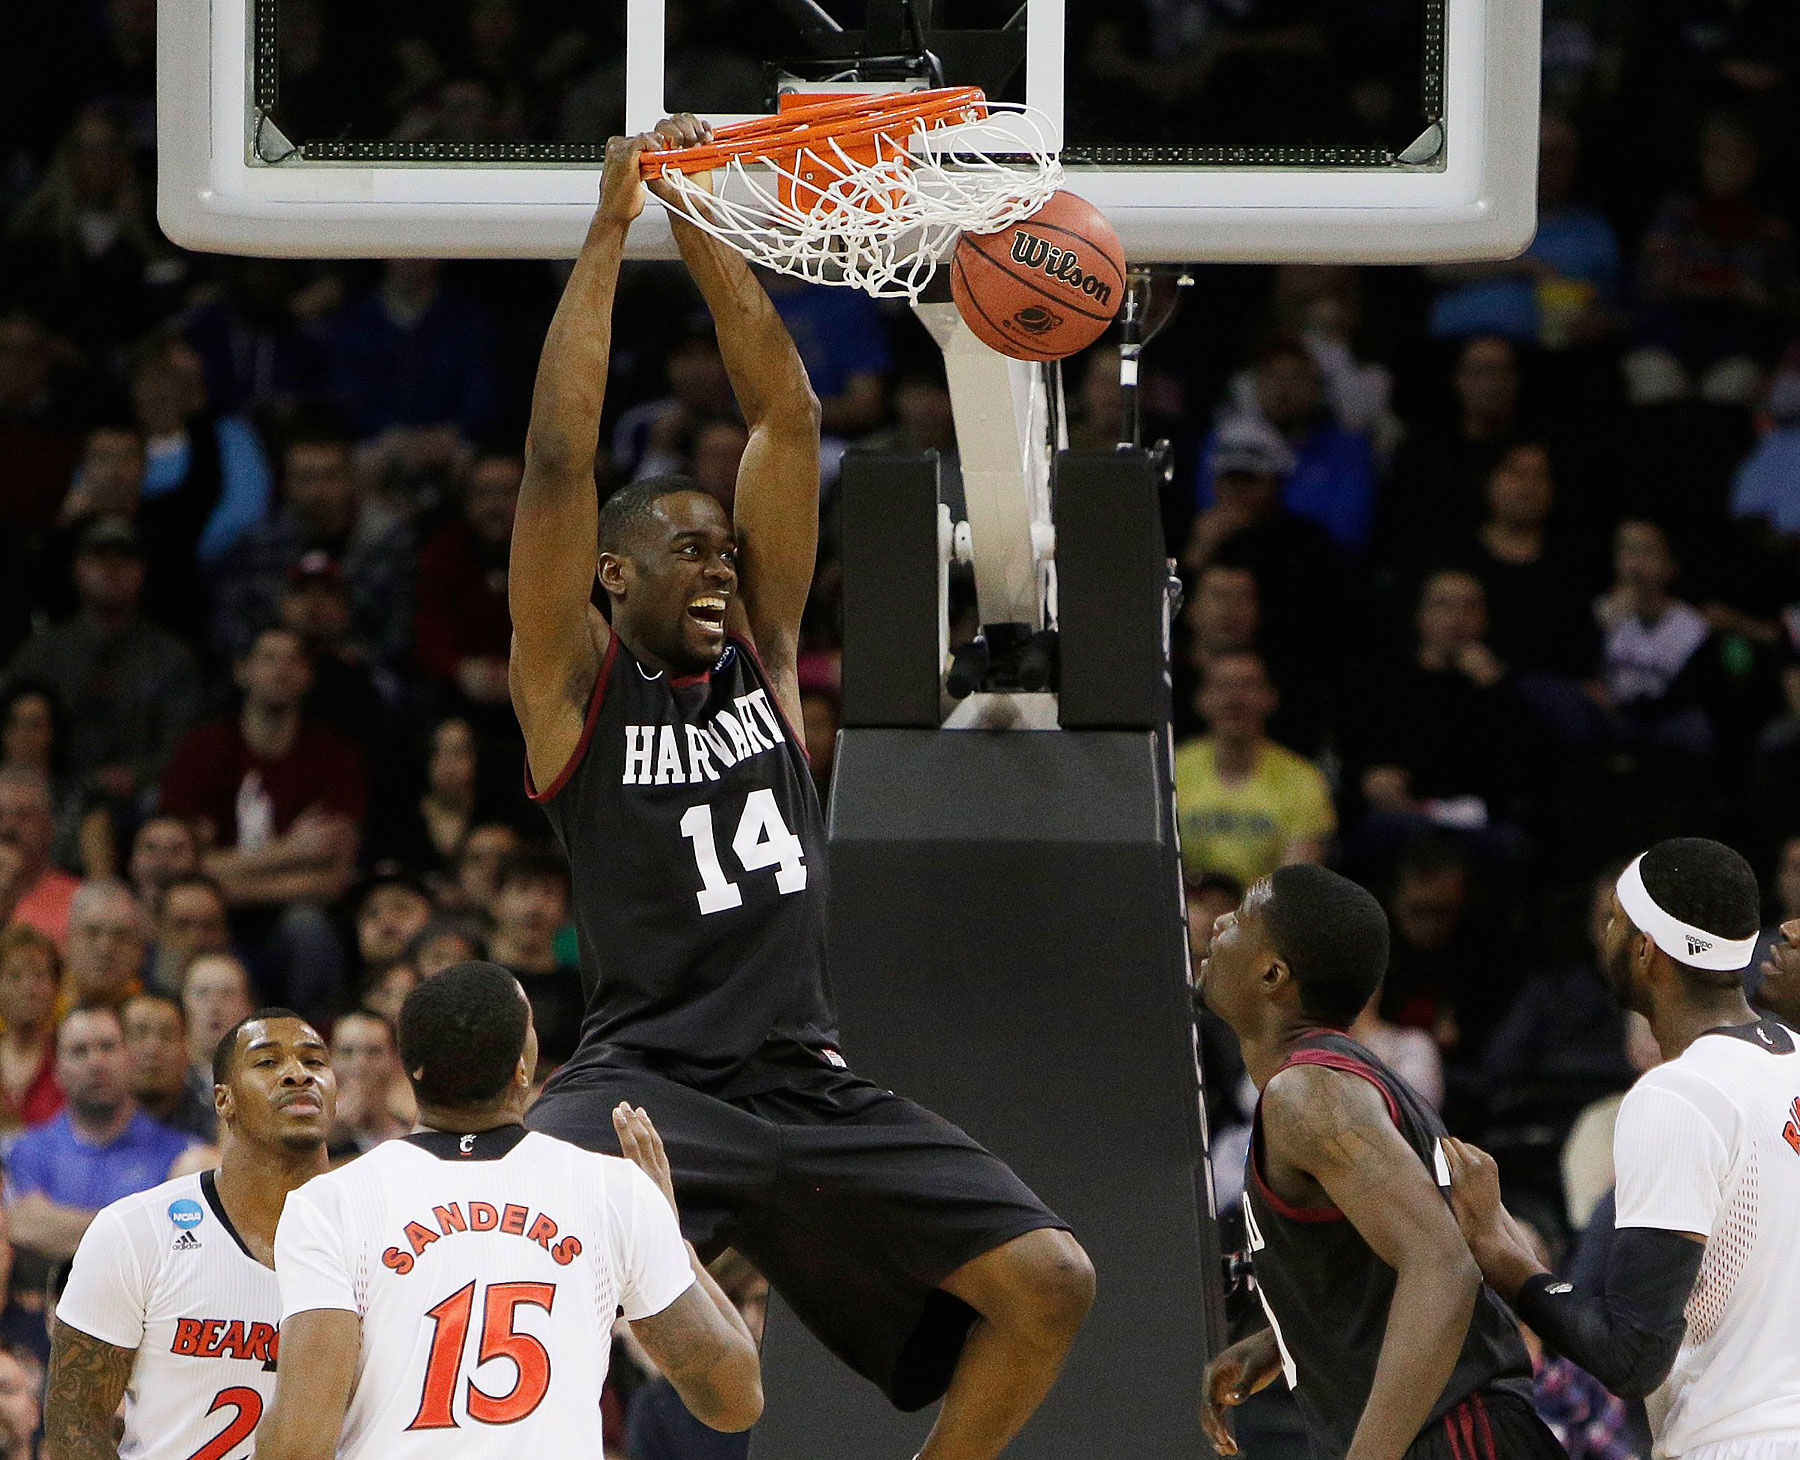 Harvardís Steve Moundou-Missi dunks against Cincinnati in the second half during the second-round of the NCAA men's college basketball tournament in Spokane, Wash., March 20, 2014.